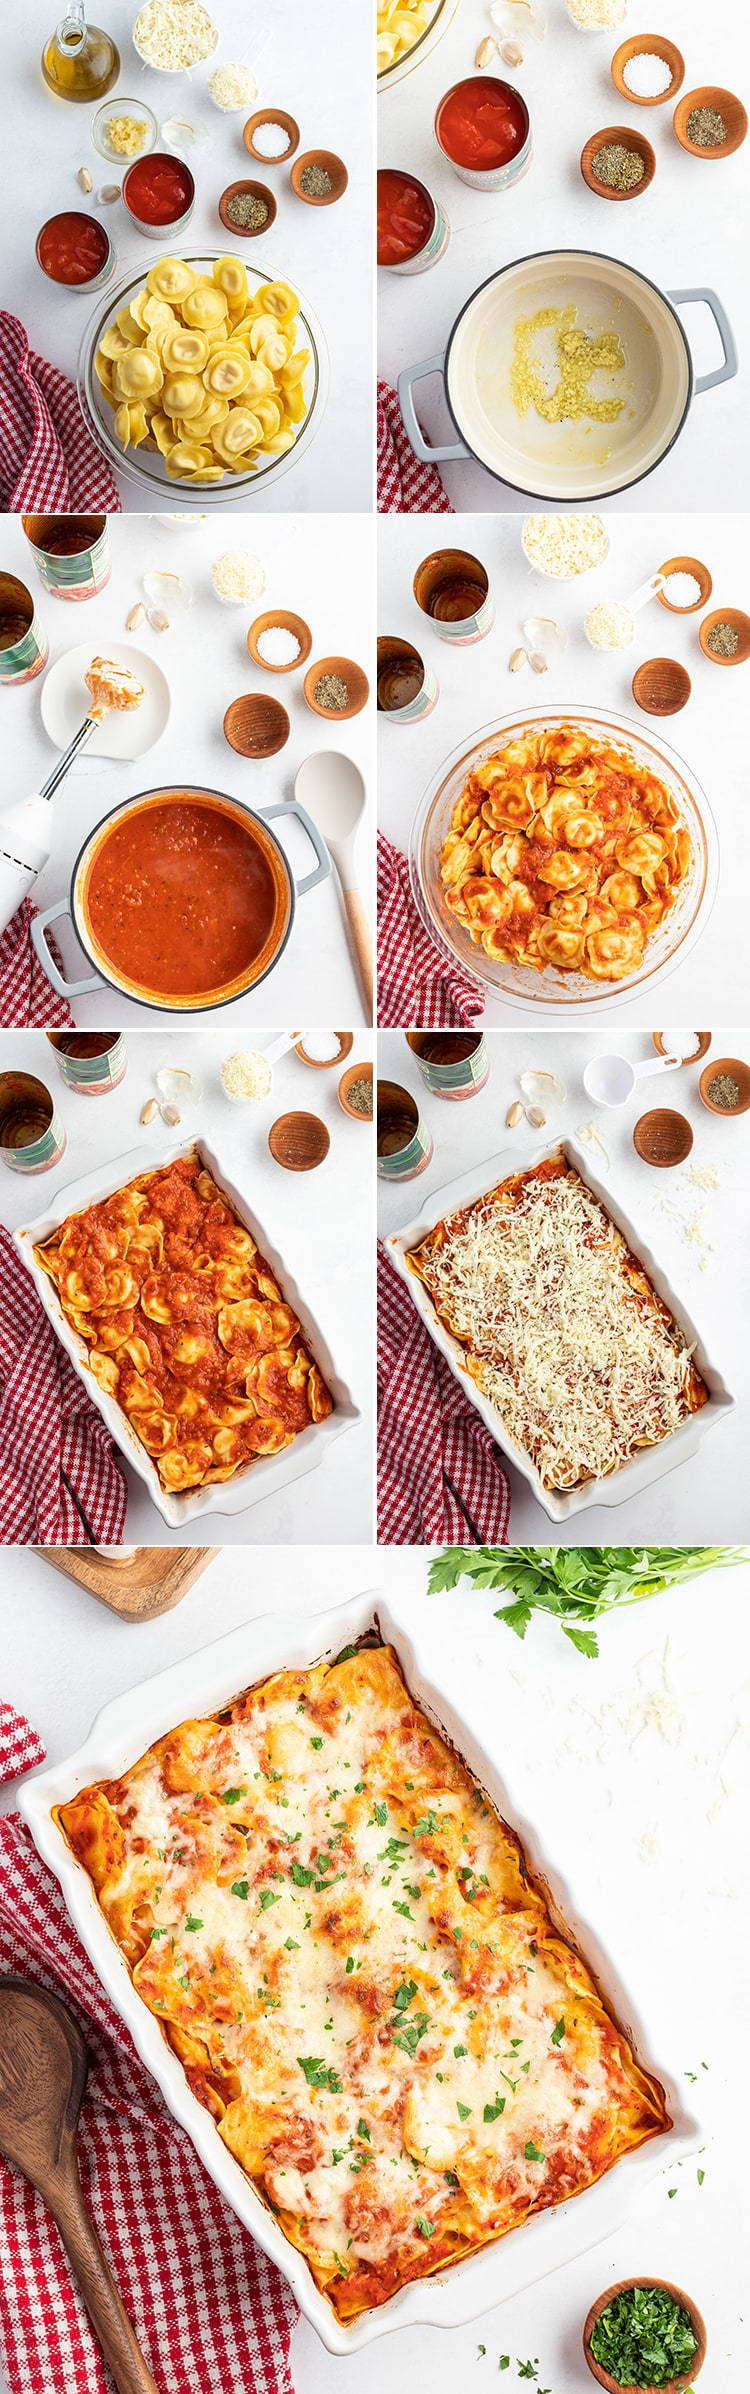 Step by step photos of how to make baked ravioli.